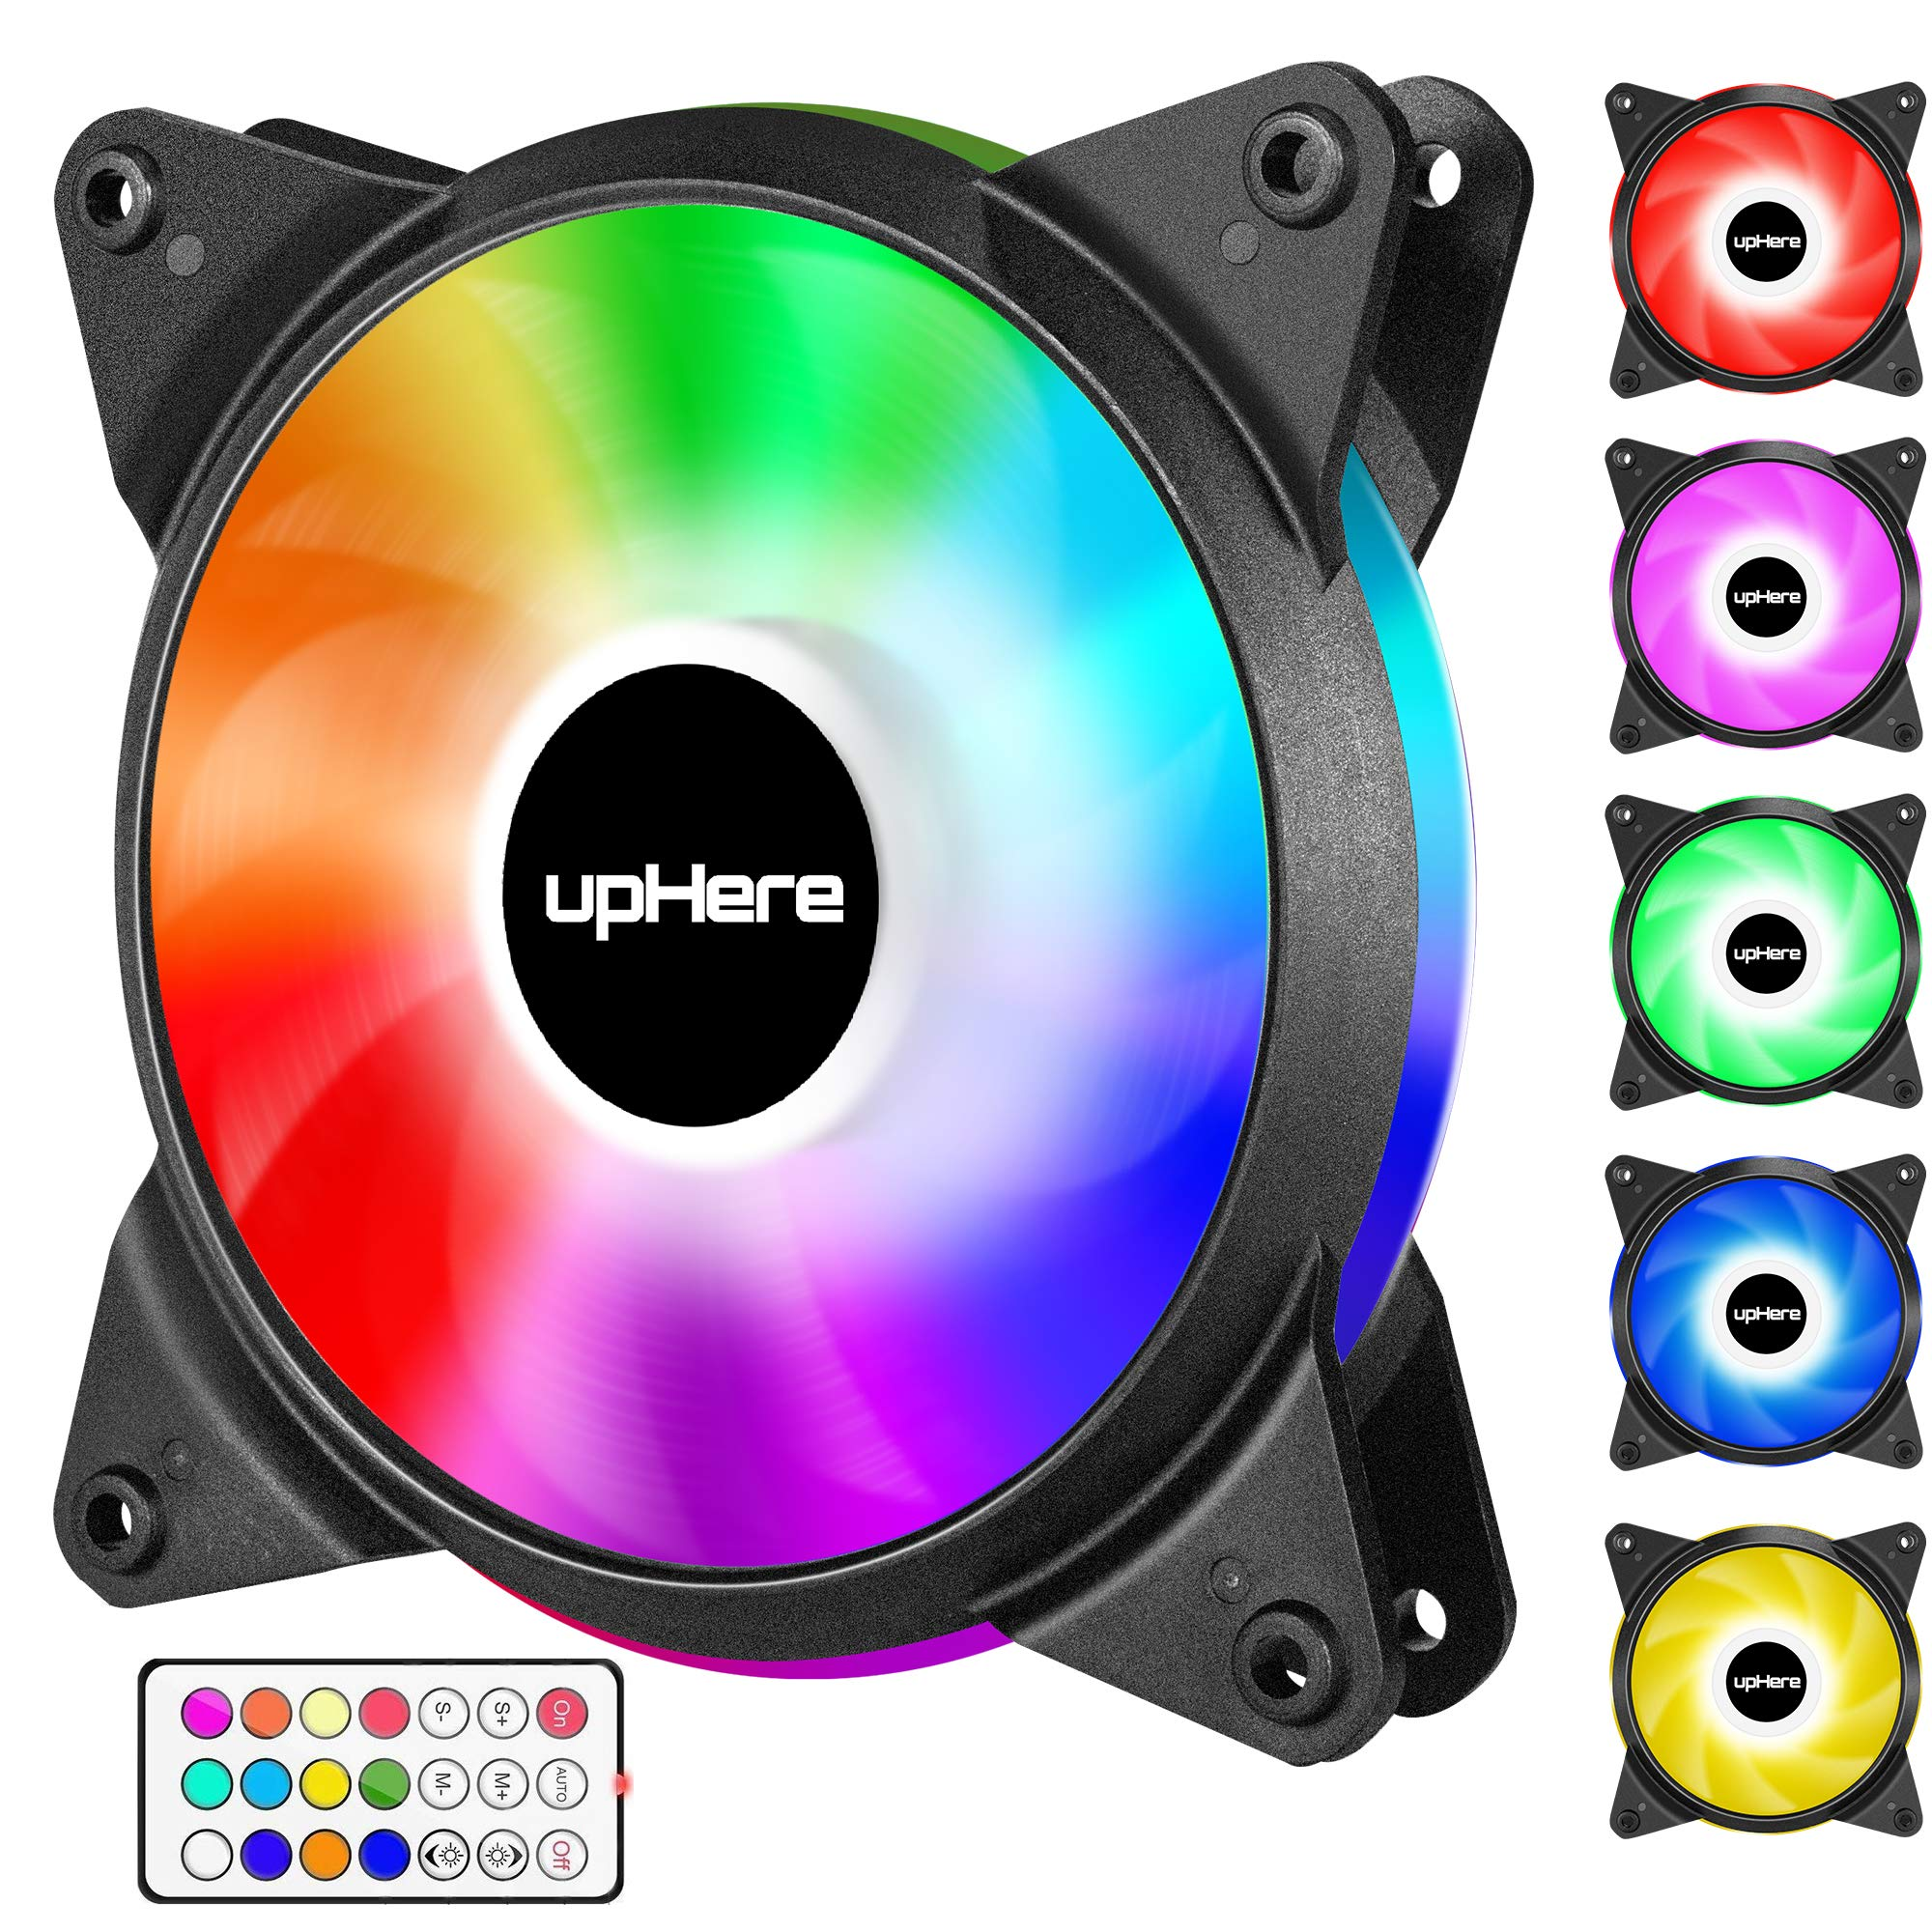 upHere 6-Pack 120mm Silent Intelligent Control Addressable RGB Fan Adjustable Colorful Fans with Controller and Remote,T6C63-6 by upHere (Image #2)